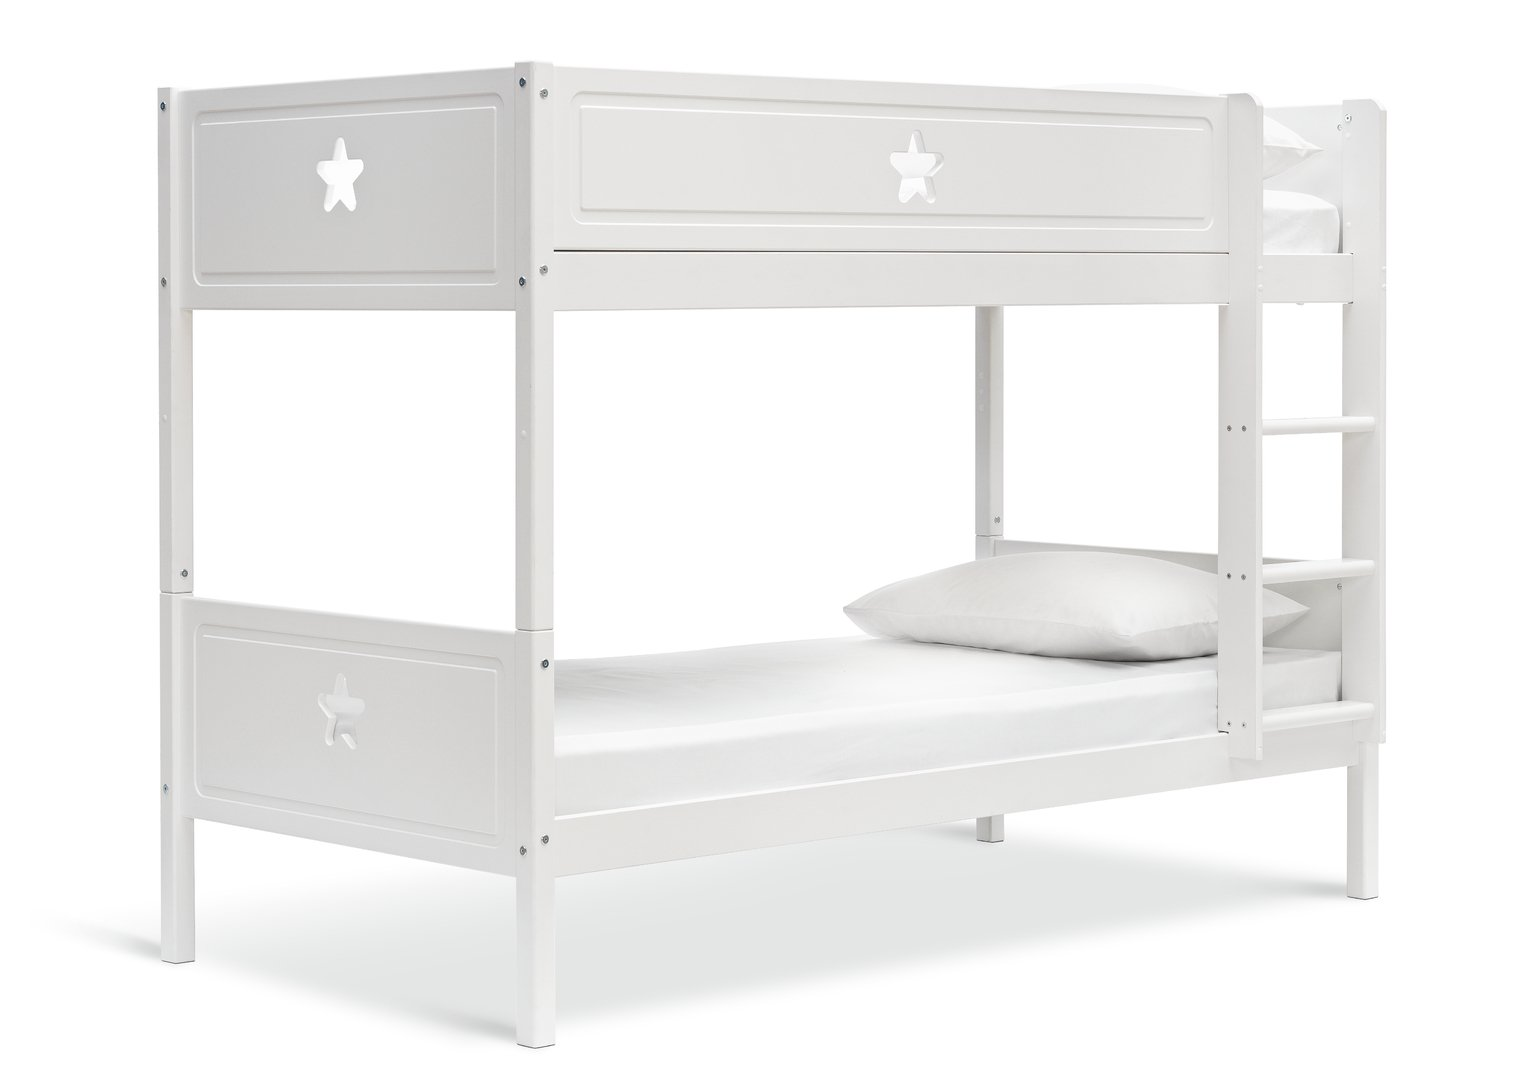 Argos Home Stars Bunk Bed